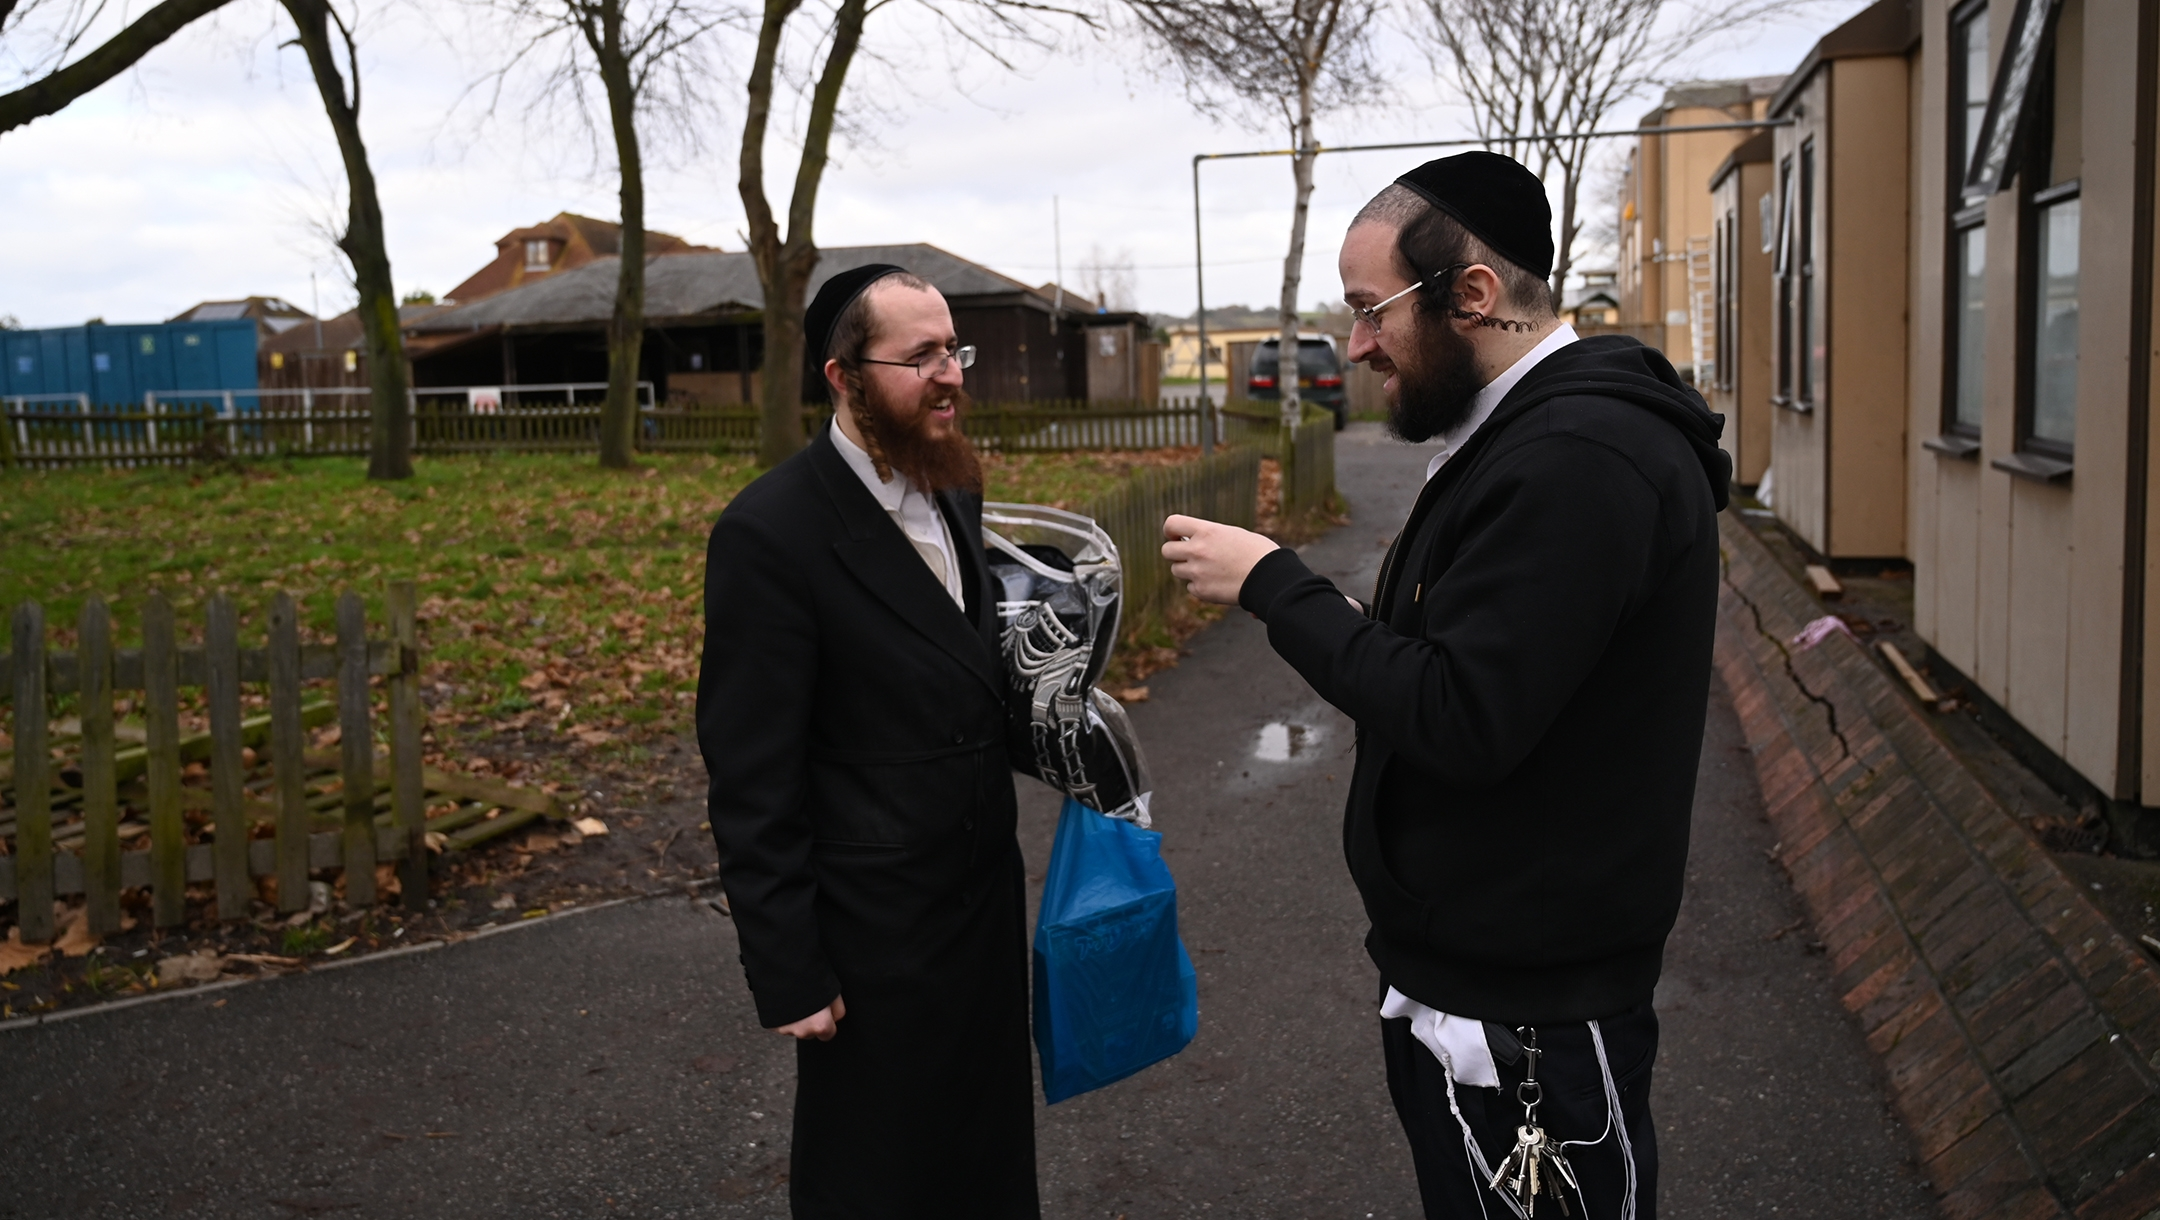 Jacob Gross, right, speaking to a resident of Canvey Island, UK outside the town's synagogue on Dec. 13, 2019. (Cnaan Liphshiz)